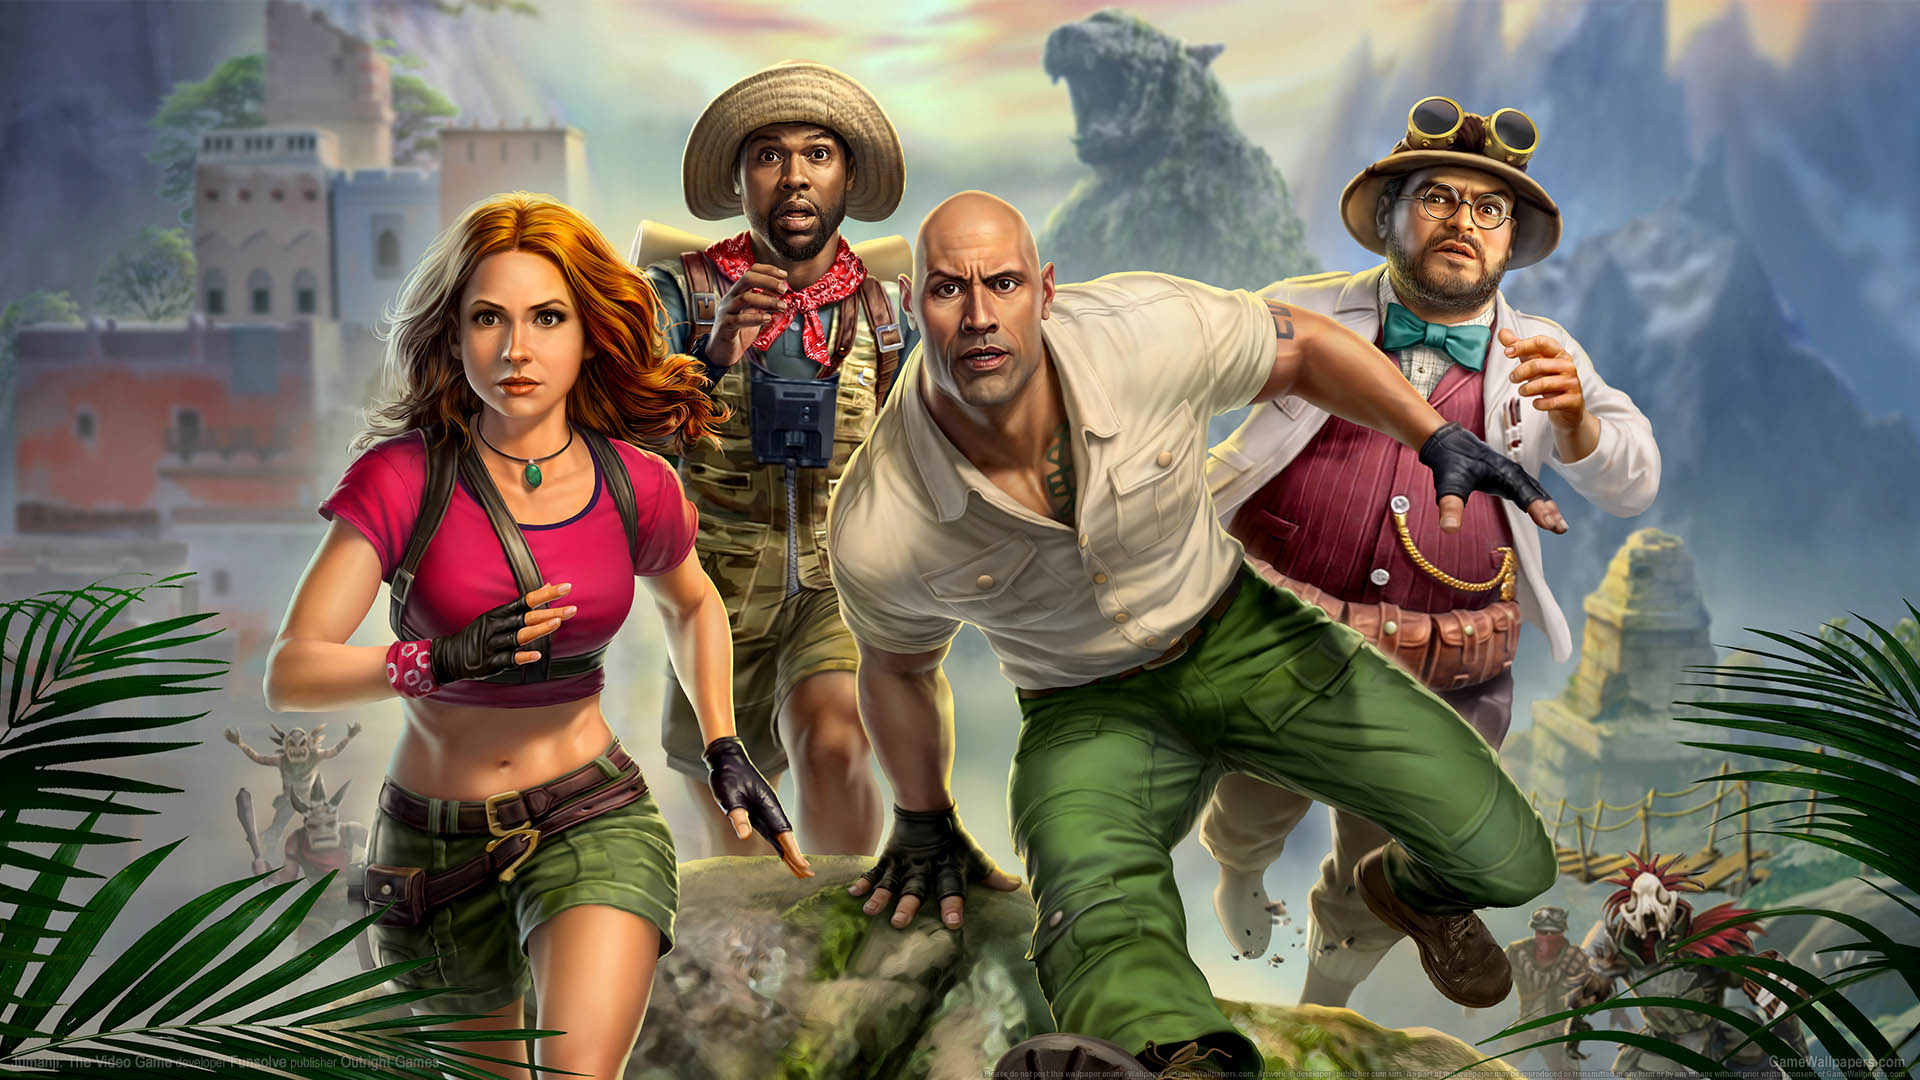 Jumanji: The Video Game wallpaper 01 1920x1080